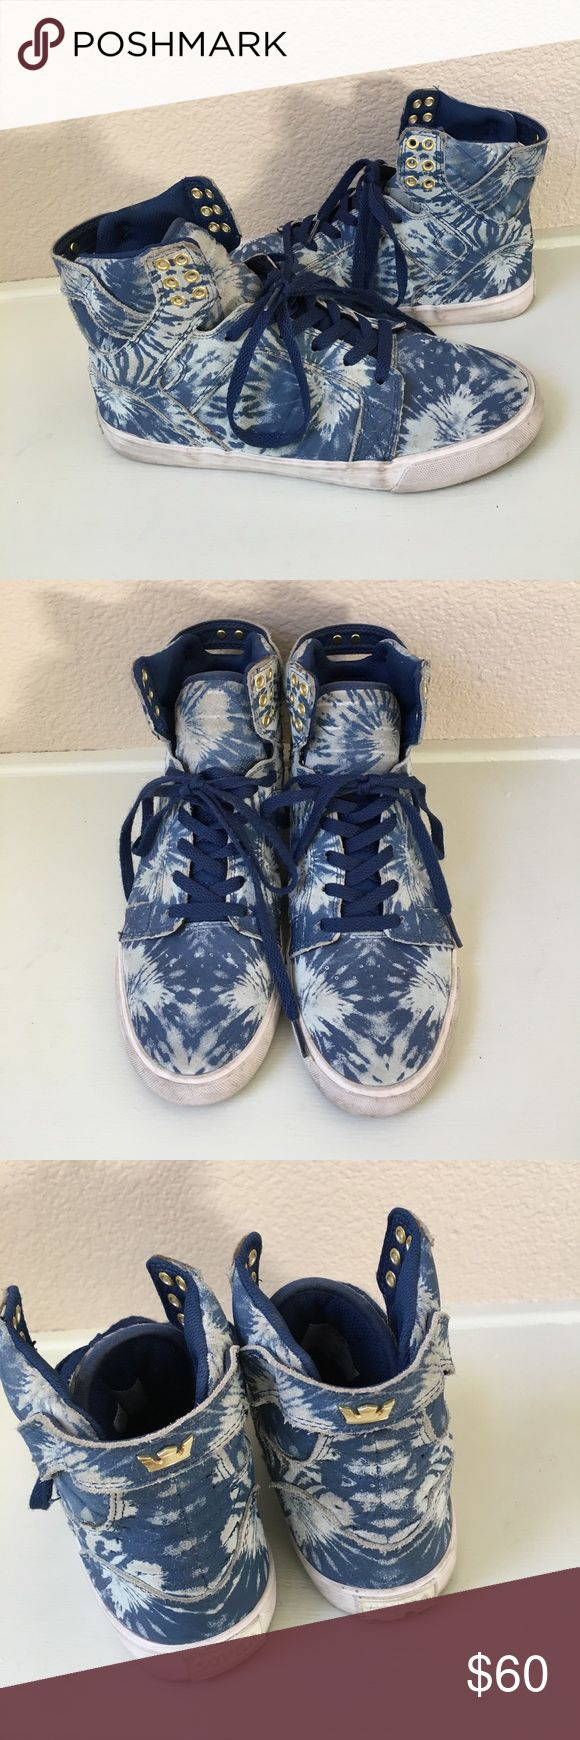 SUPRA MUSKA 001 SKYTOP TIE DYE PRINT Very cute and can be worn with anything! Leather upper !! Supra Shoes Sneakers